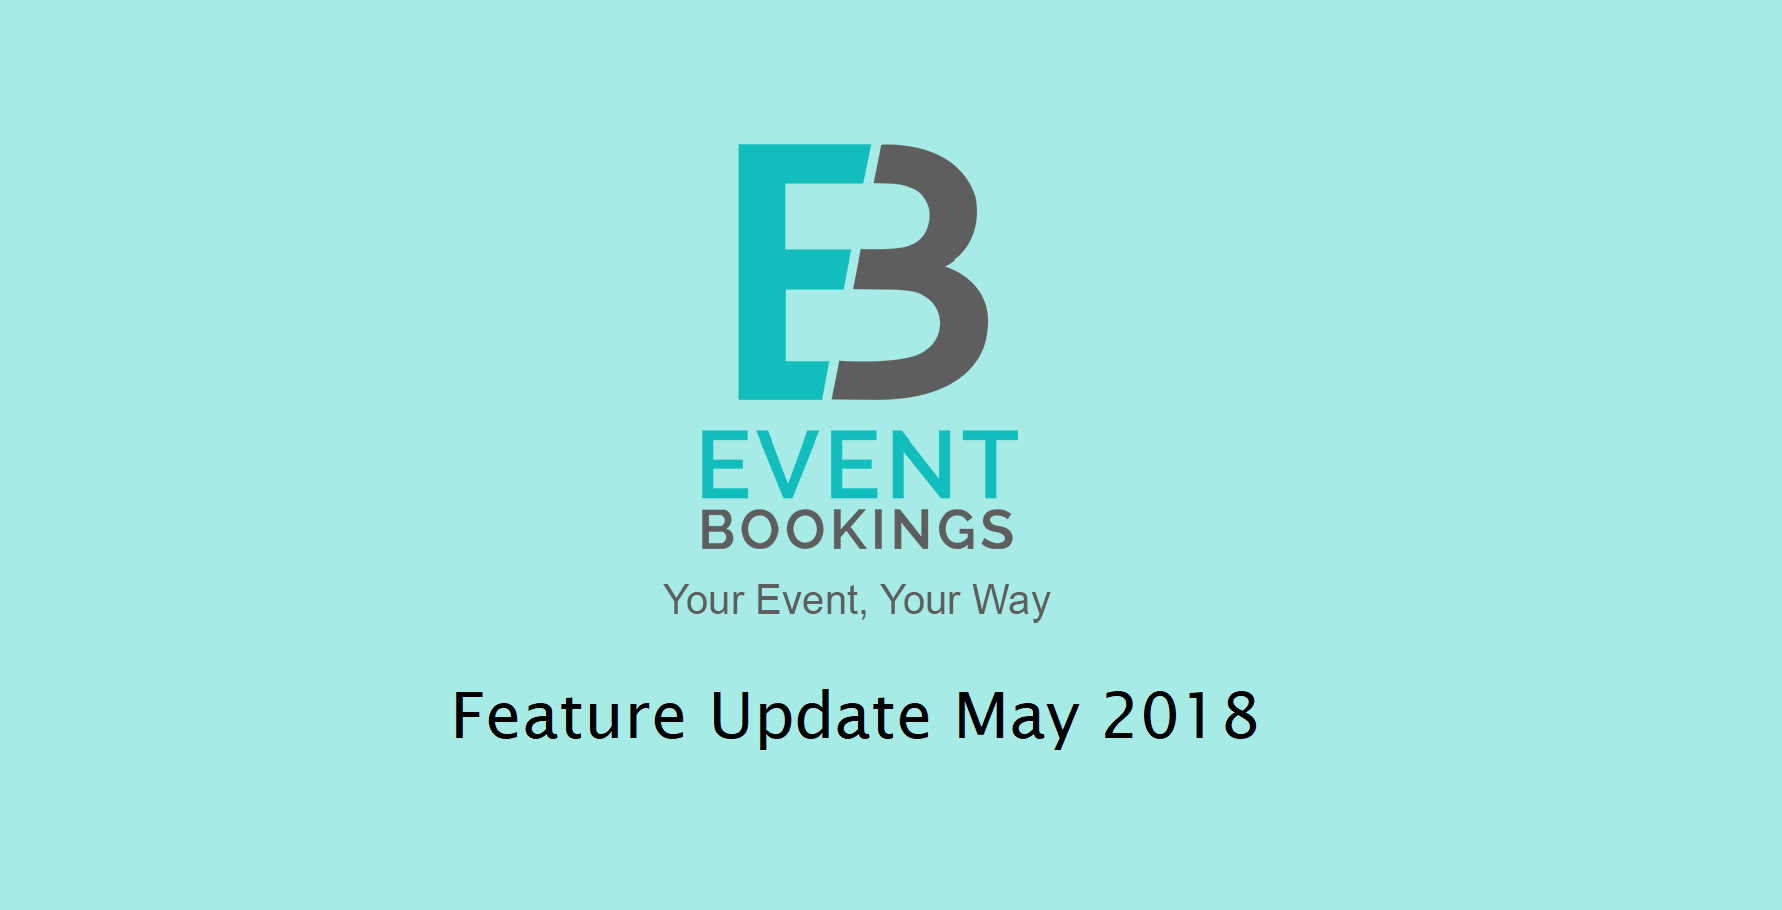 Eventbookings-Feature-Updates-2018